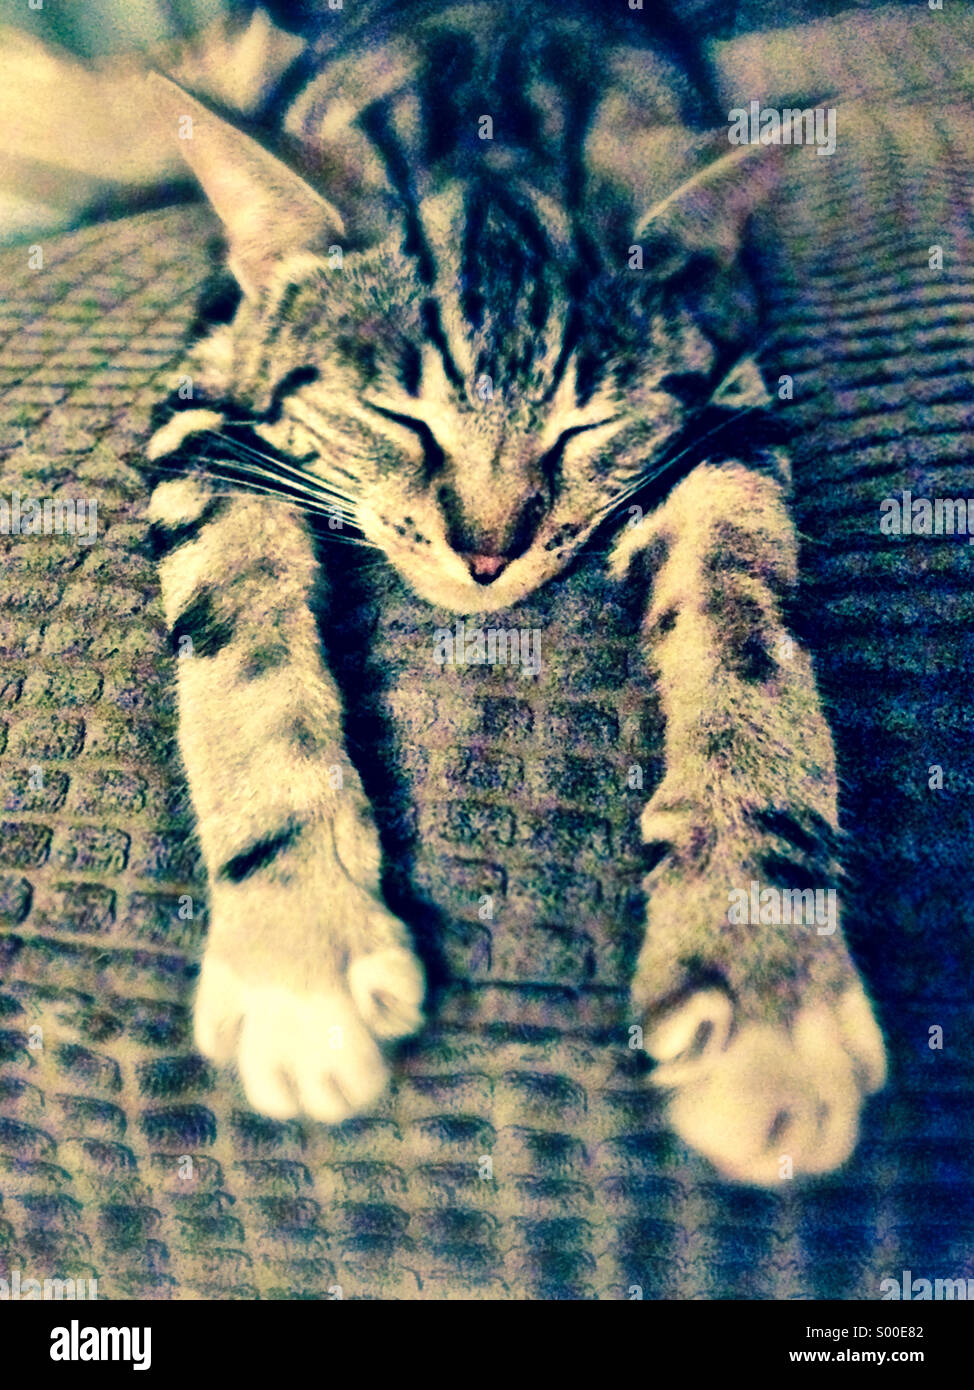 Stretched out and relaxed - Stock Image